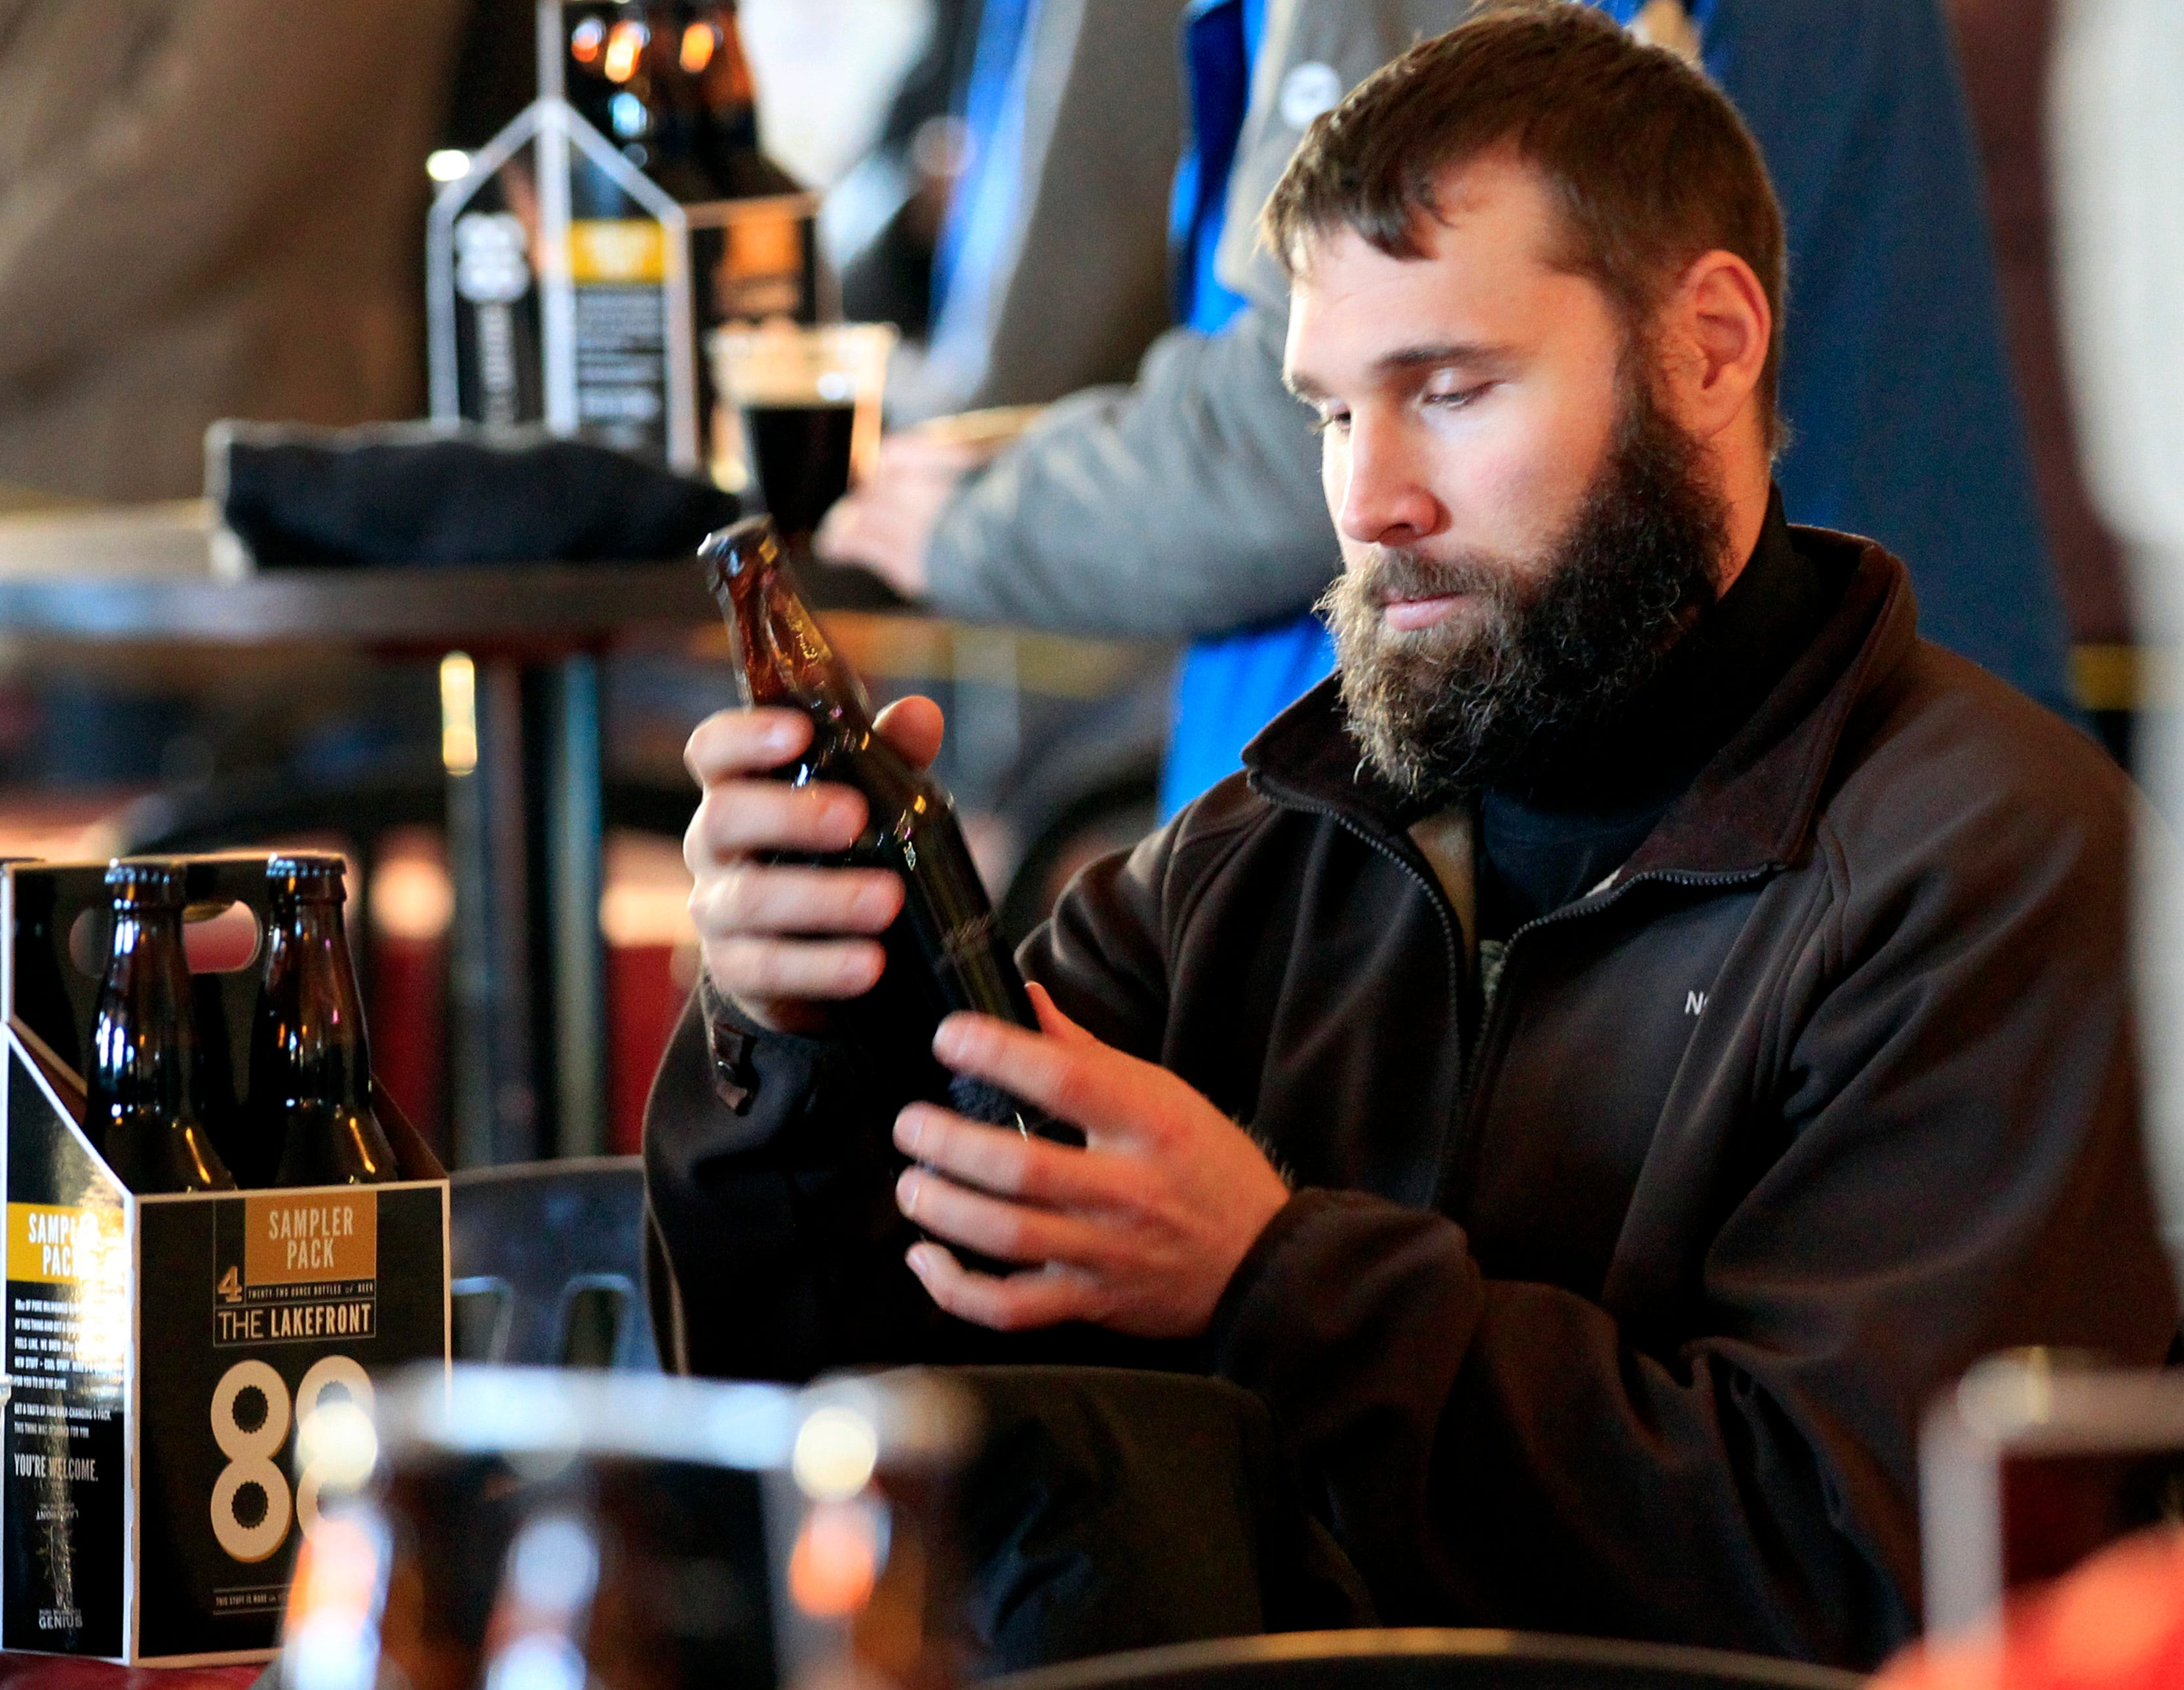 Nick Mueller of East Troy looks at a bottle of Black Friday ale during the second annual Black Friday event at Lakefront Brewery in 2013. Since then the idea has expanded to many other breweries around Milwaukee.